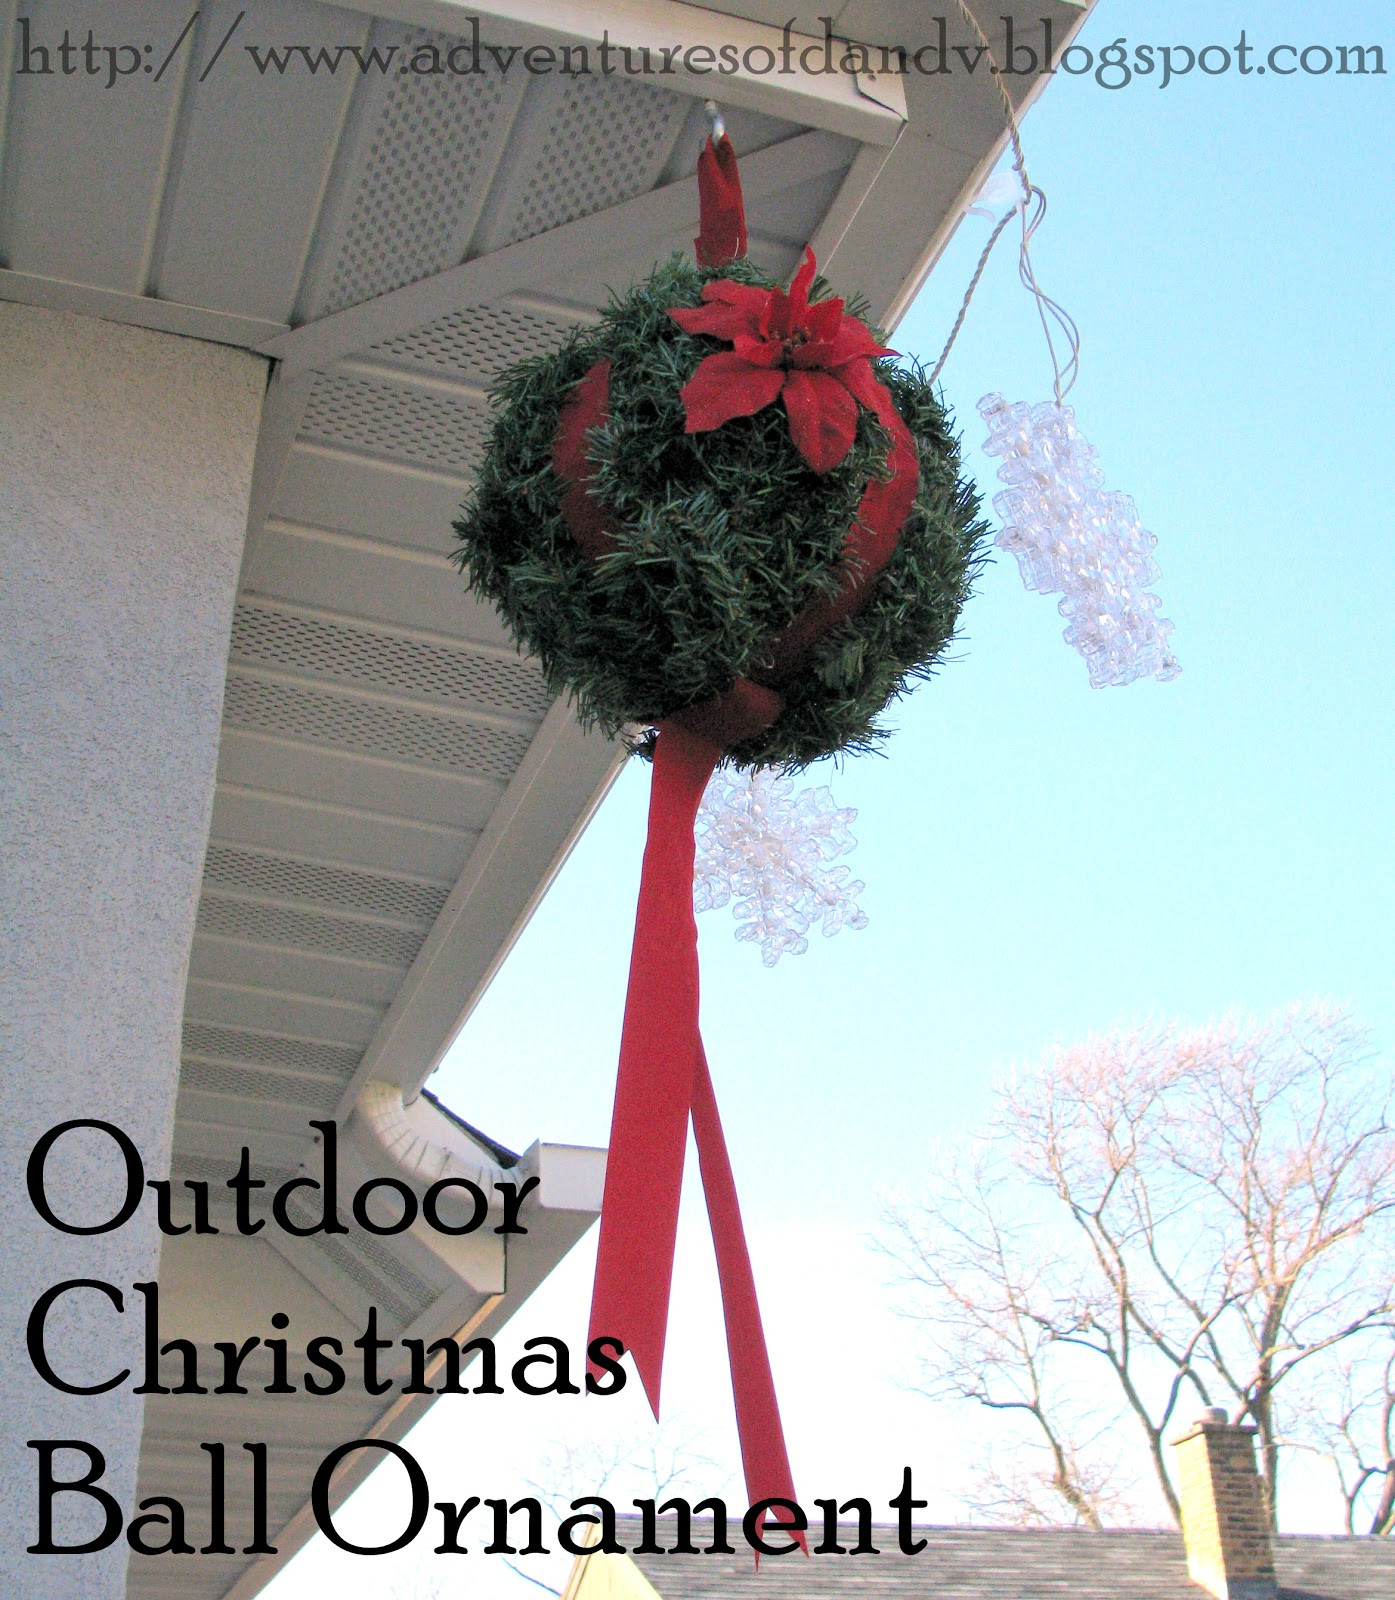 Hanging Christmas Decorations Outside.Adventures Of D And V Adventures In Decorating Outdoor